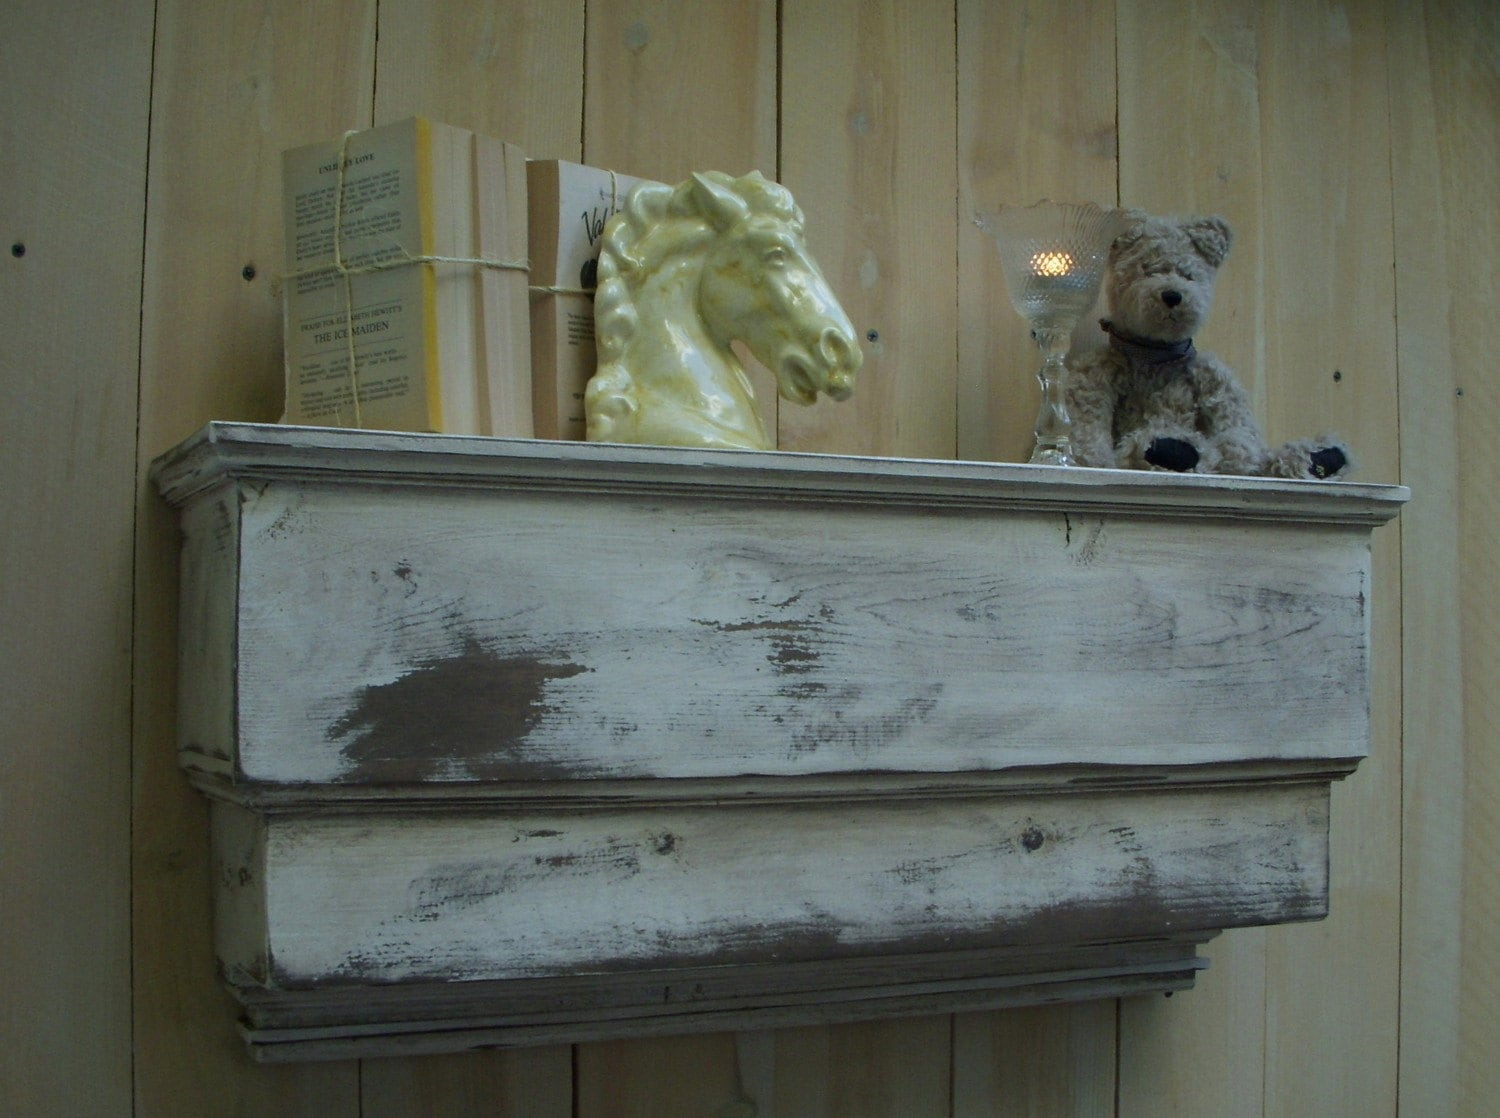 Very Impressive portraiture of Wood Wall Shelf Ledge You Choose Color 31 by honeystreasures with #595138 color and 1500x1118 pixels